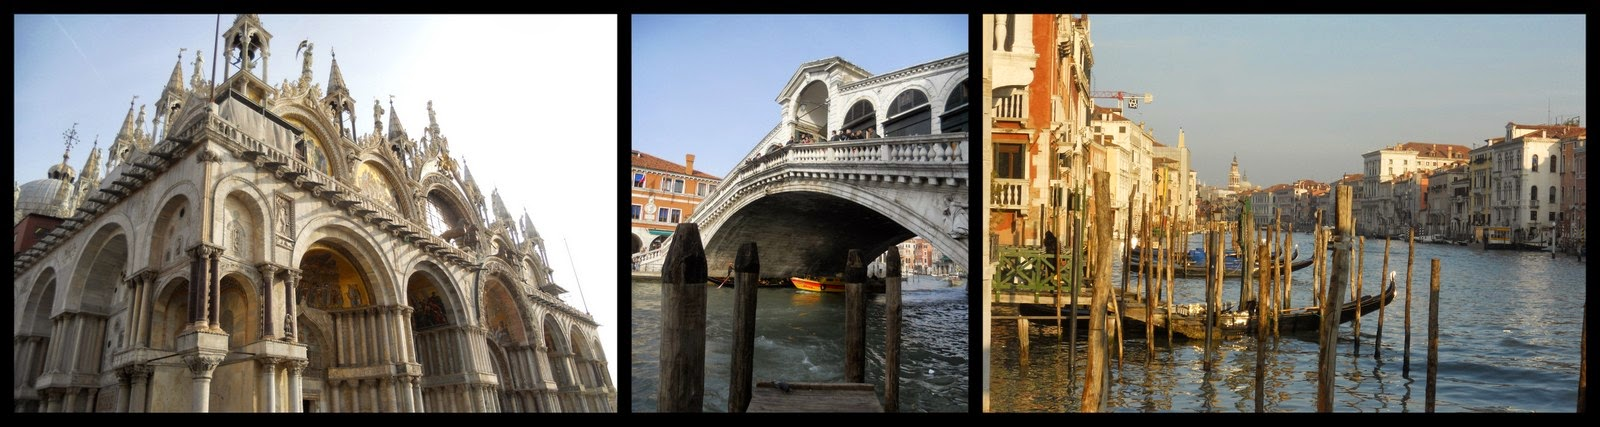 Travel Highlights - Venice